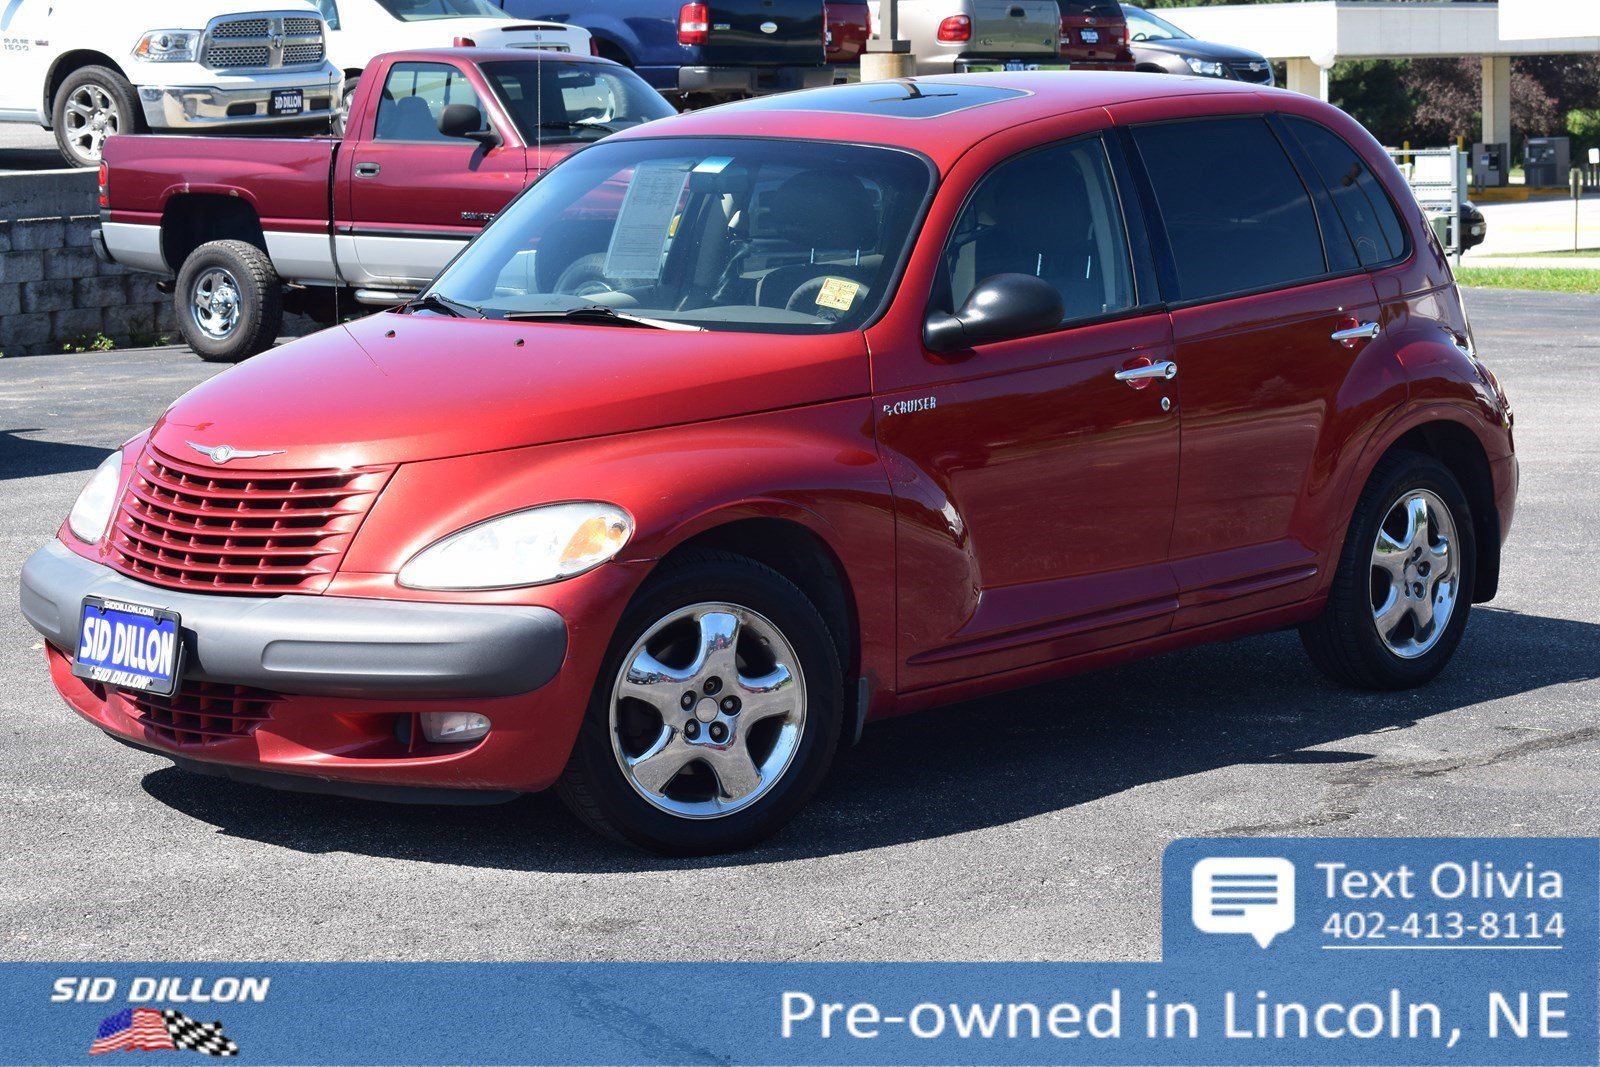 Pre-Owned 2001 Chrysler PT Cruiser 4DR BASE